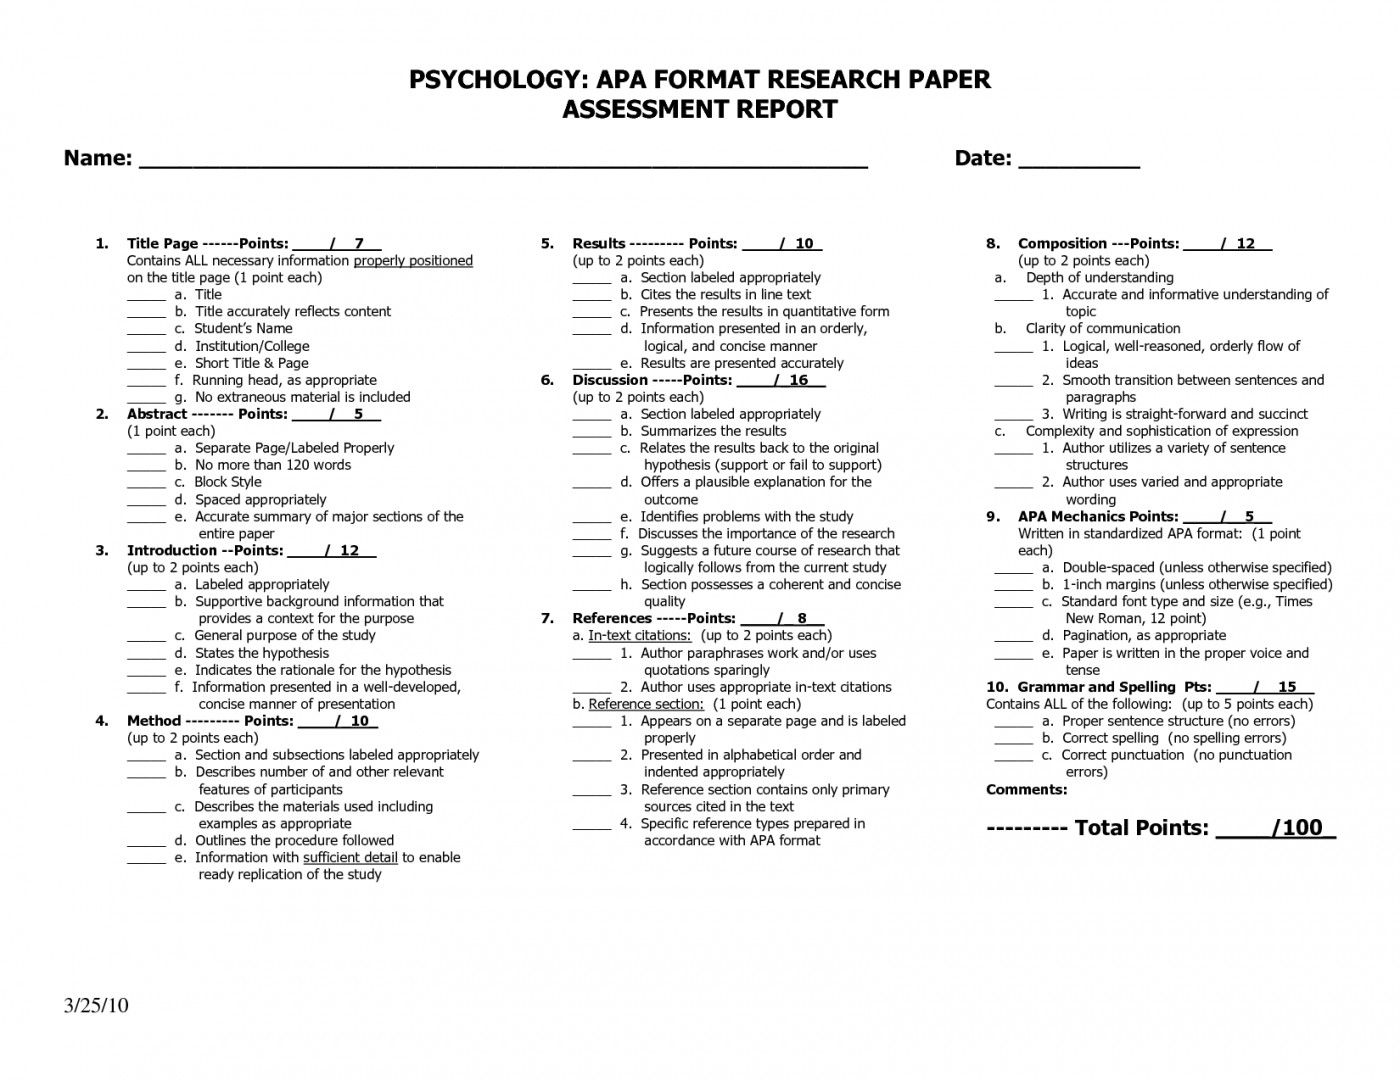 021 Research Paper Apa Format For Psychology Striking Topics Depression Papers On Dreams 1400